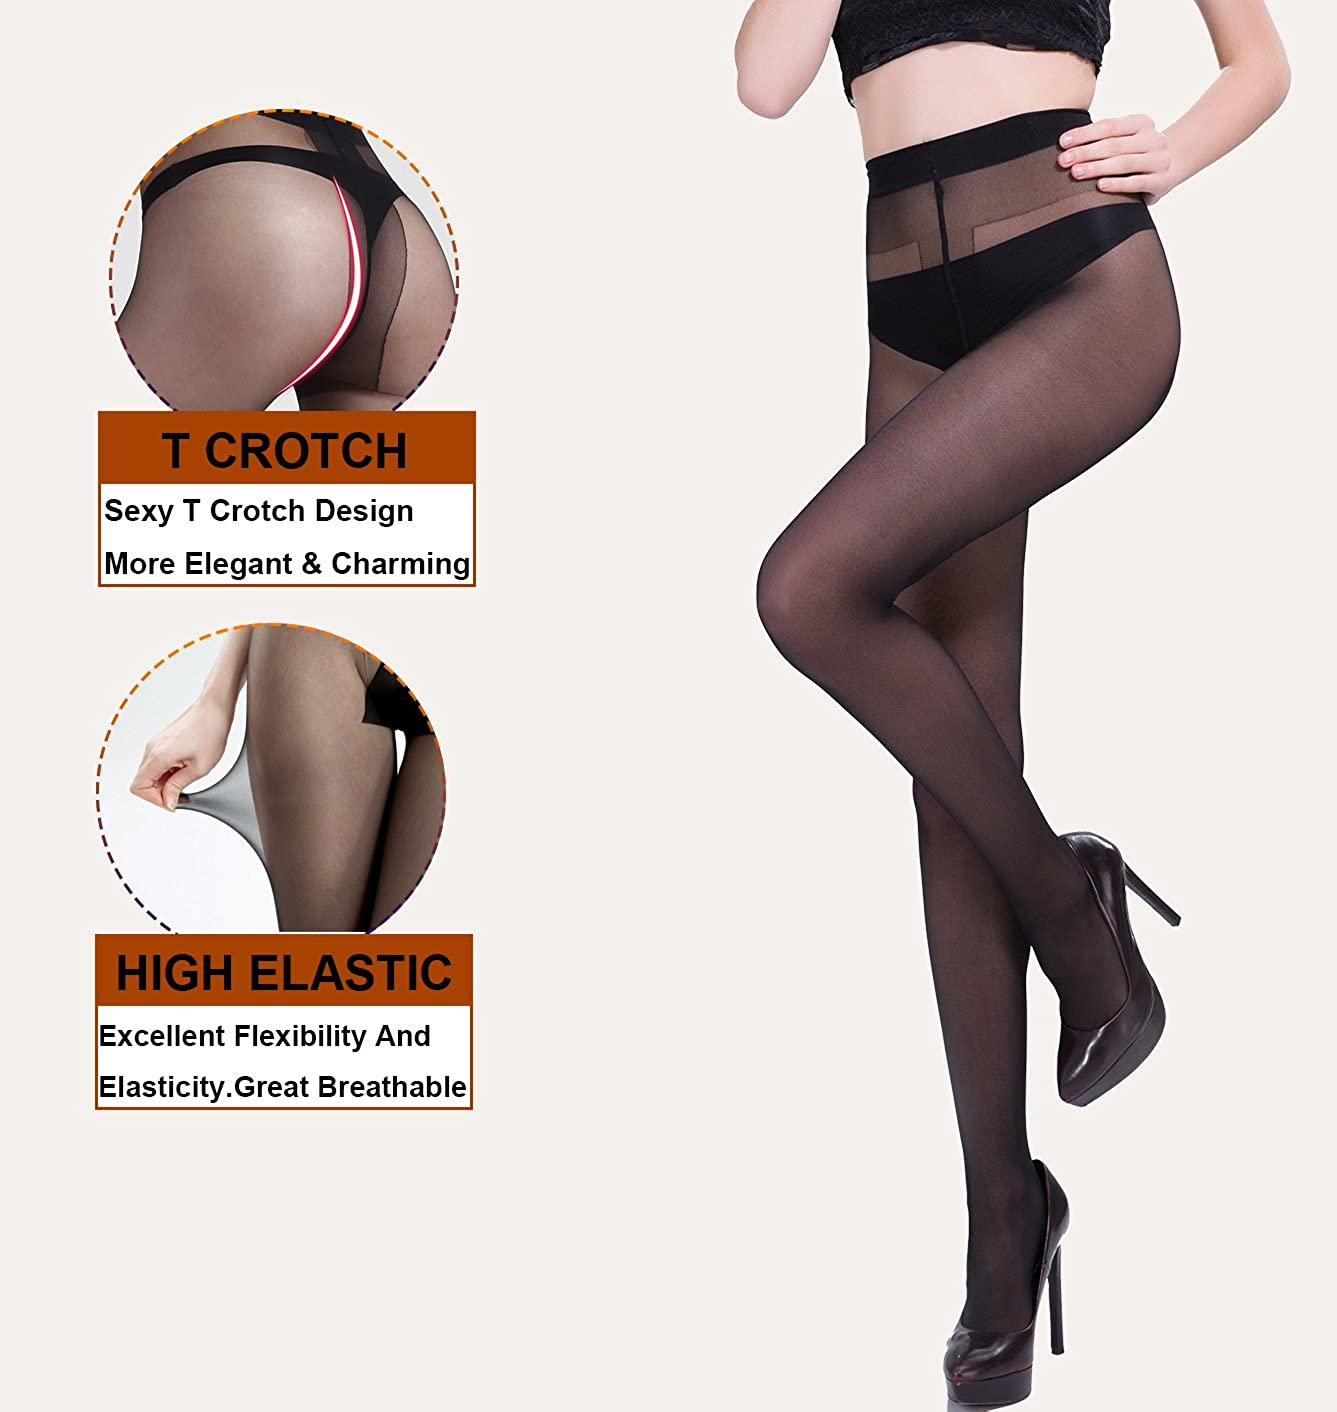 18b075af6 MERYLURE 2 Pairs Semi Sheer Pantyhose Sexy T Crotch Control Top Tights  Hosiery at Amazon Women s Clothing store